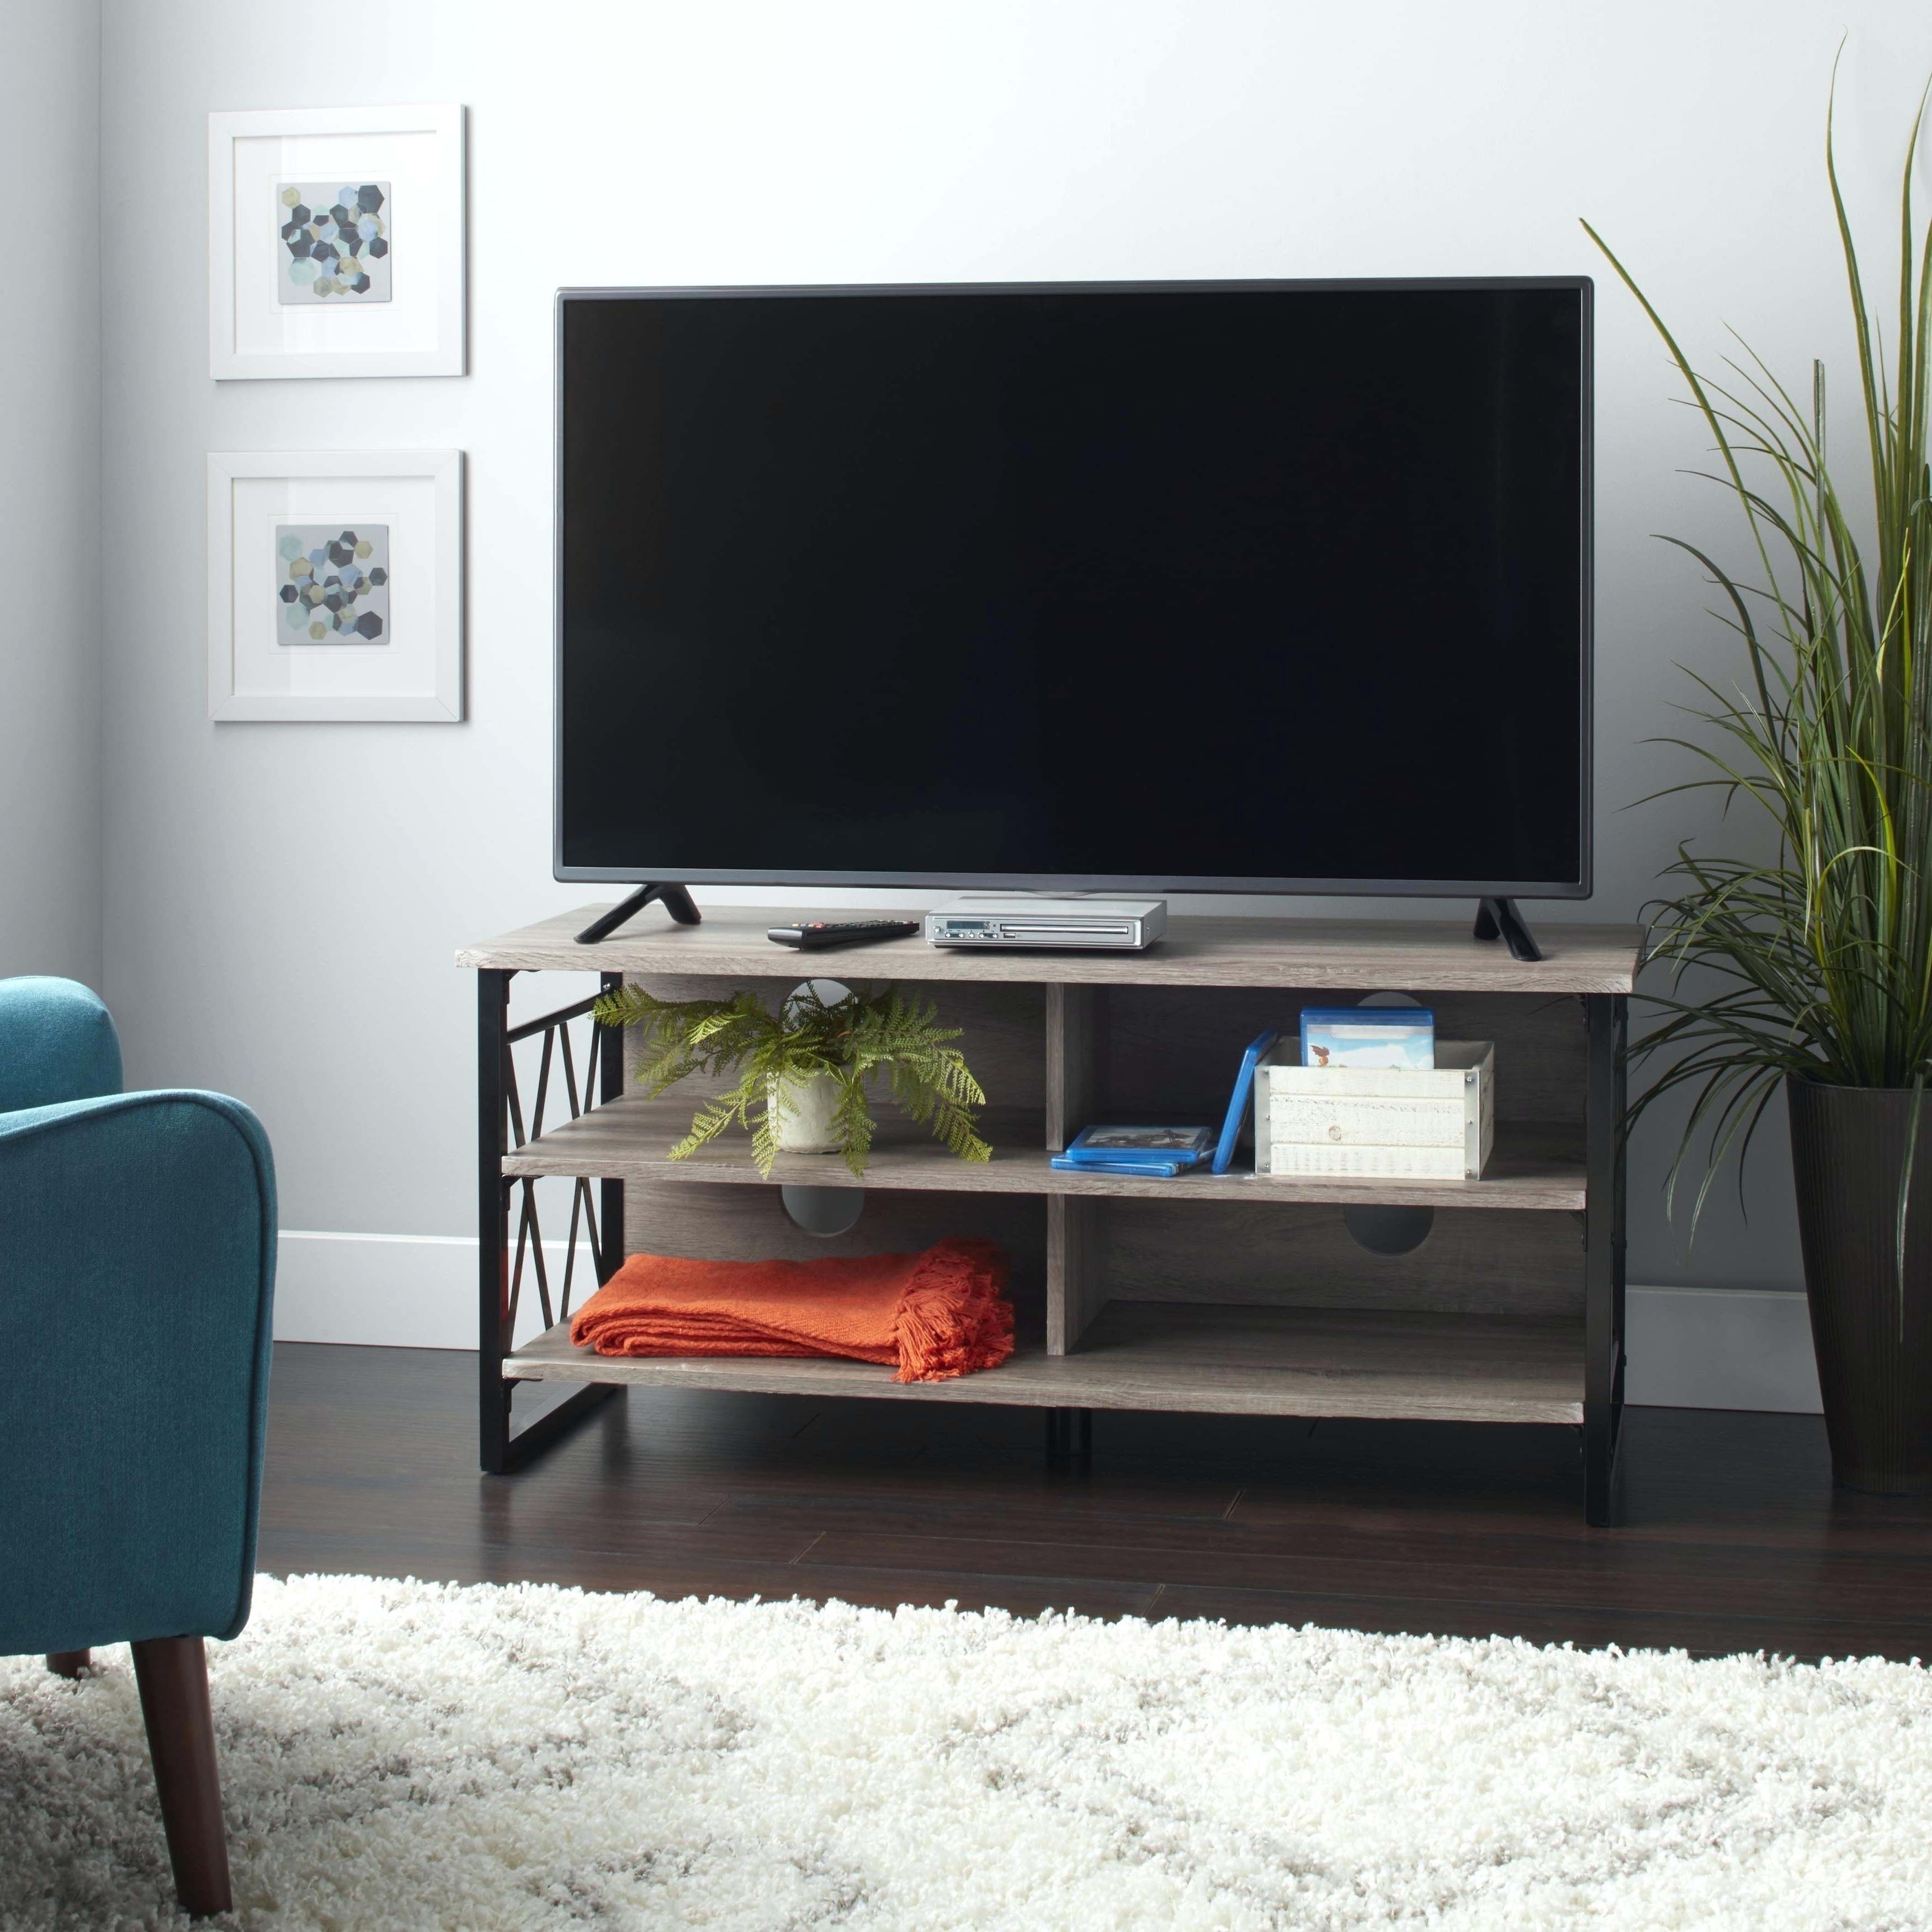 Latest Enclosed Tv Cabinets For Flat Screens With Doors With Regard To Enclosed Tv Cabinet Cabinets Flat Screens Wall Corner With Doors (View 18 of 20)